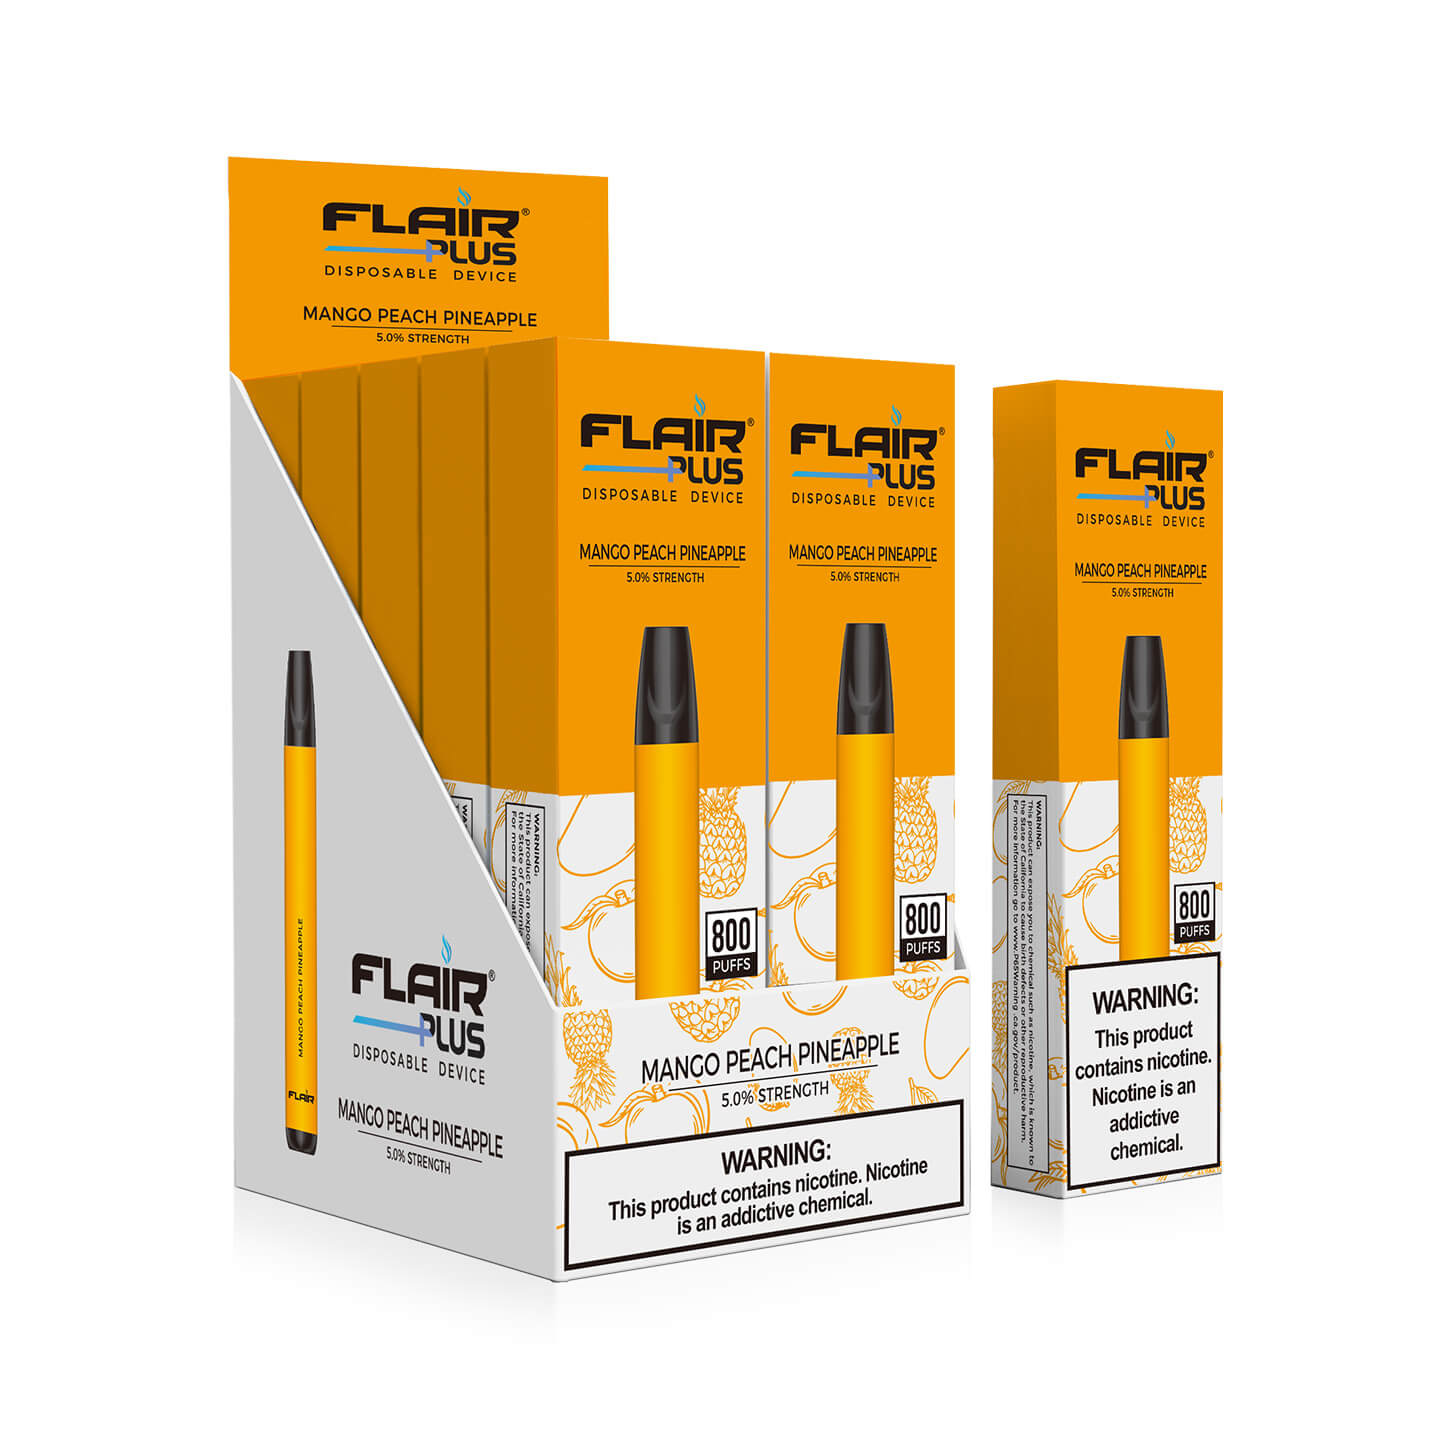 Flair Plus Disposable Device - Mango Peach Pineapple - Box image